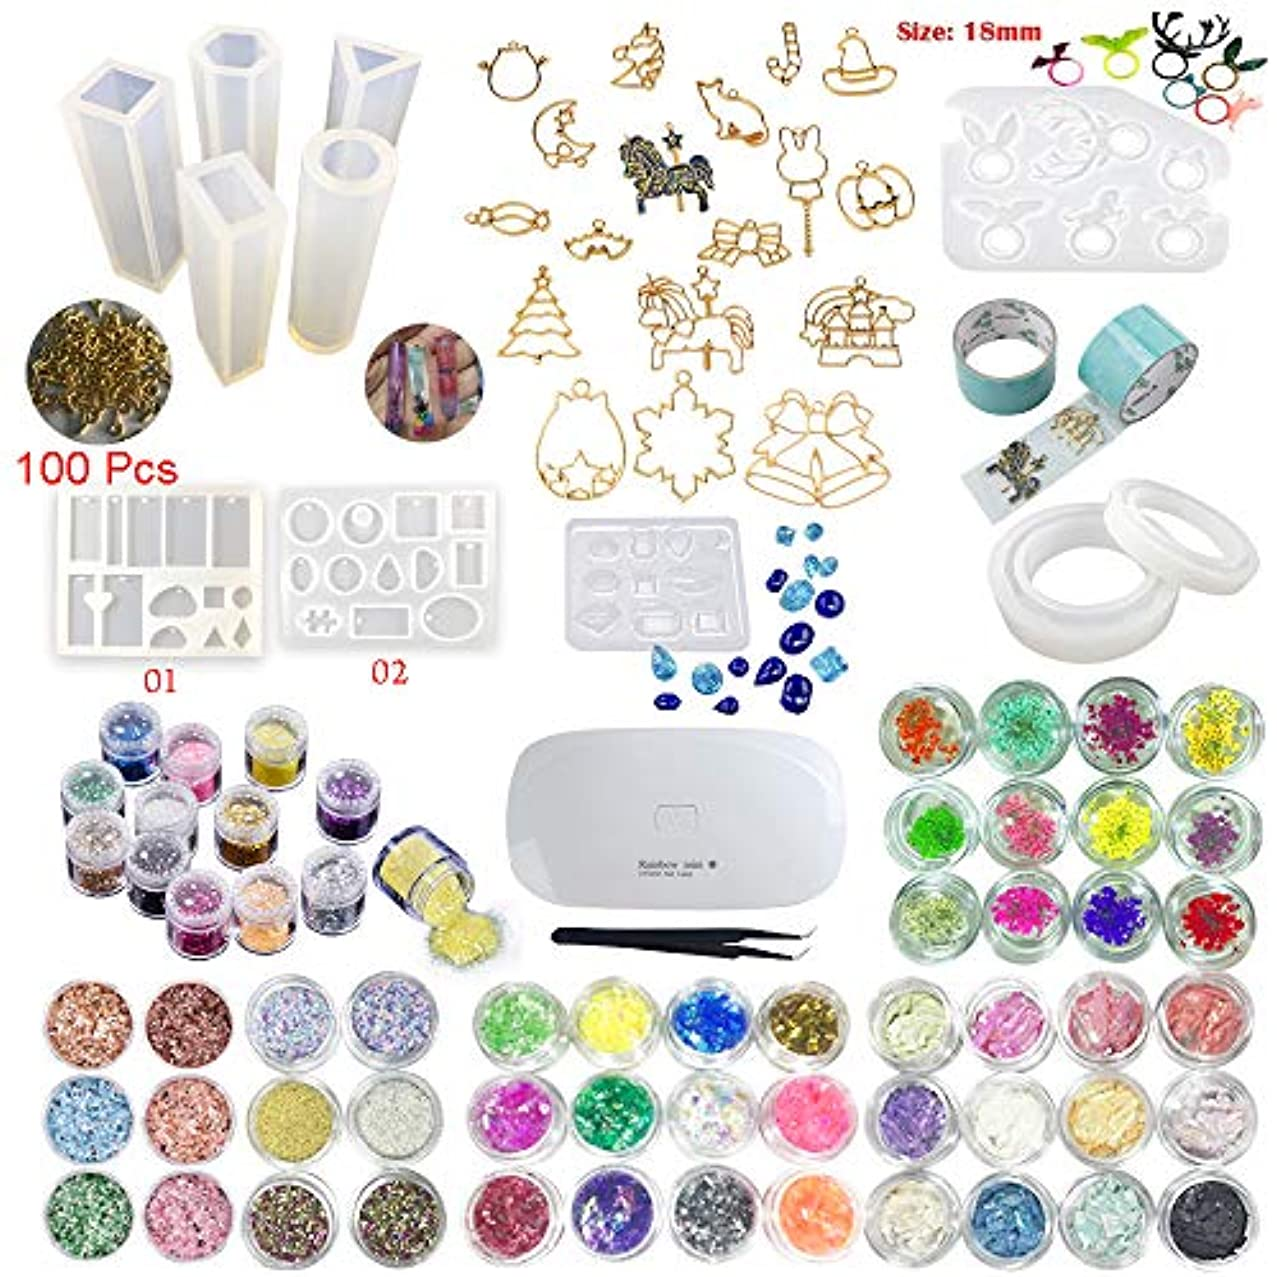 Jewelry Earrings Necklace Bracelet Making, 11 Molds 60 Decoration Dry Flower Sequins Stickers, Mini Pretty Irregular shell, Marble Fragments and Beads, 17 Bezel with 2 adhesive tapes, Mini Lamp